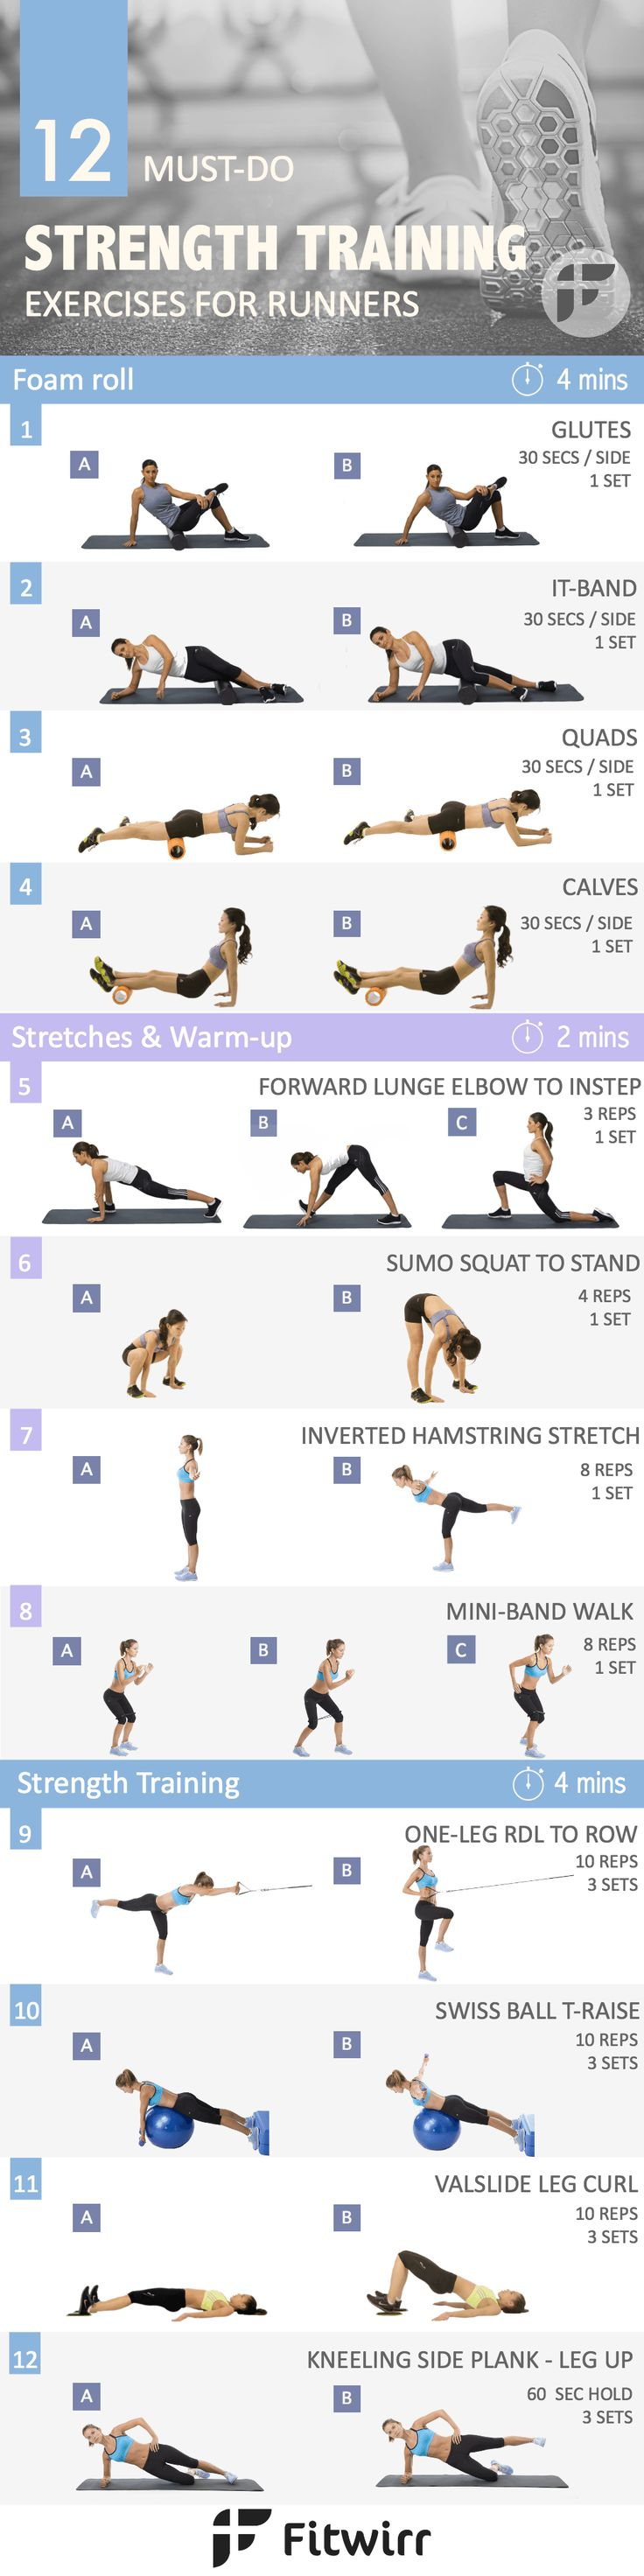 12 Strength Training Exercise Routine for Runners. As a runner you need to build a body that can withstand the impact of running and is less prone to injuries. Develop functional strength with this workout.